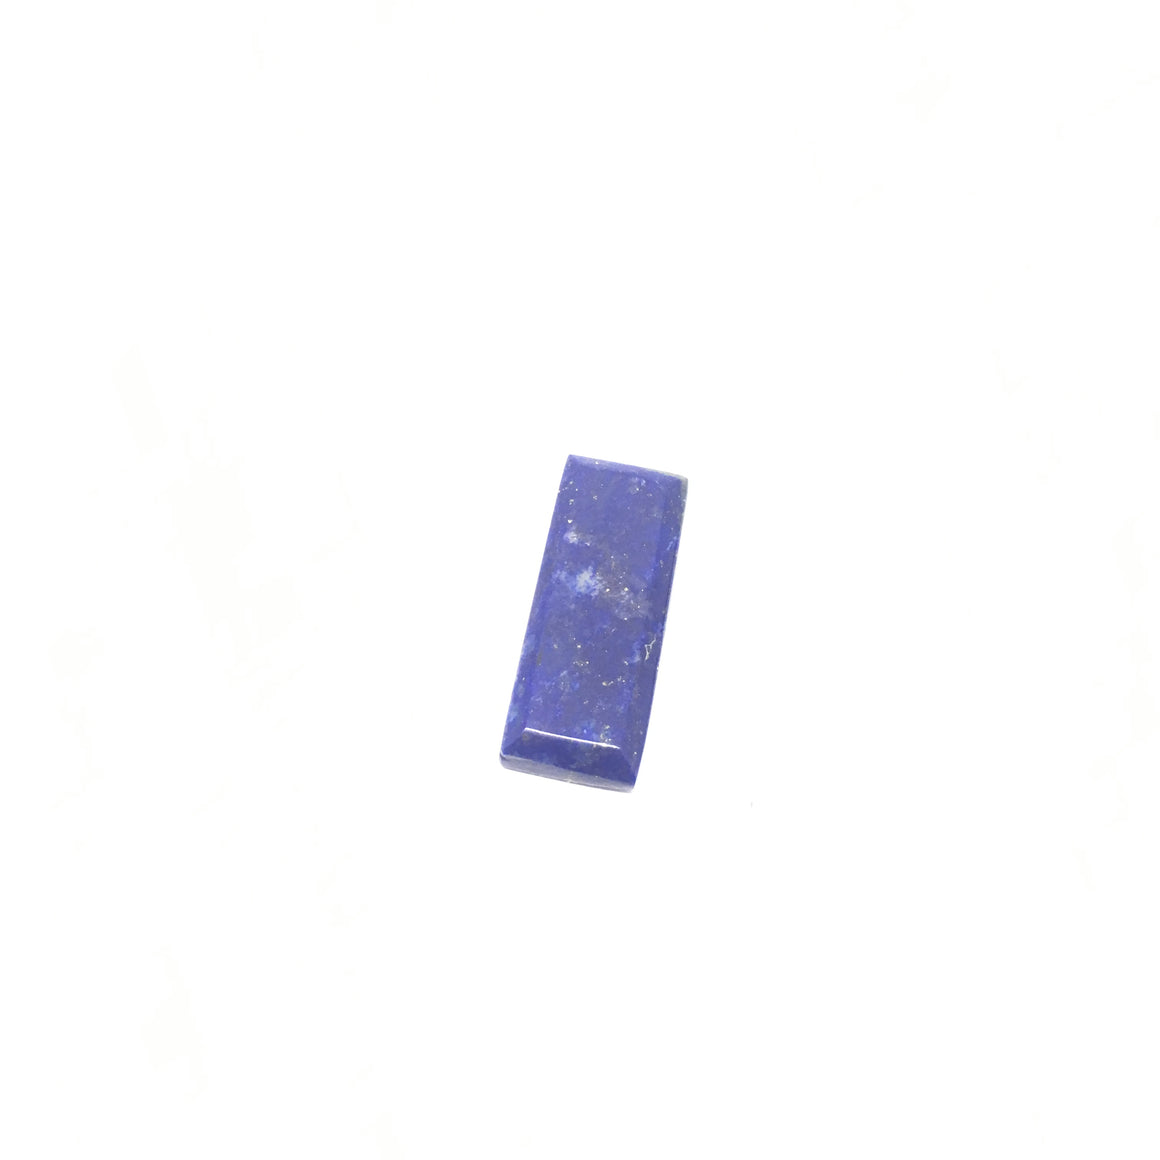 Lapis Lazuli Cabochon - Lapis Cabochon For Ring Baguette Cut - 35.40 ct